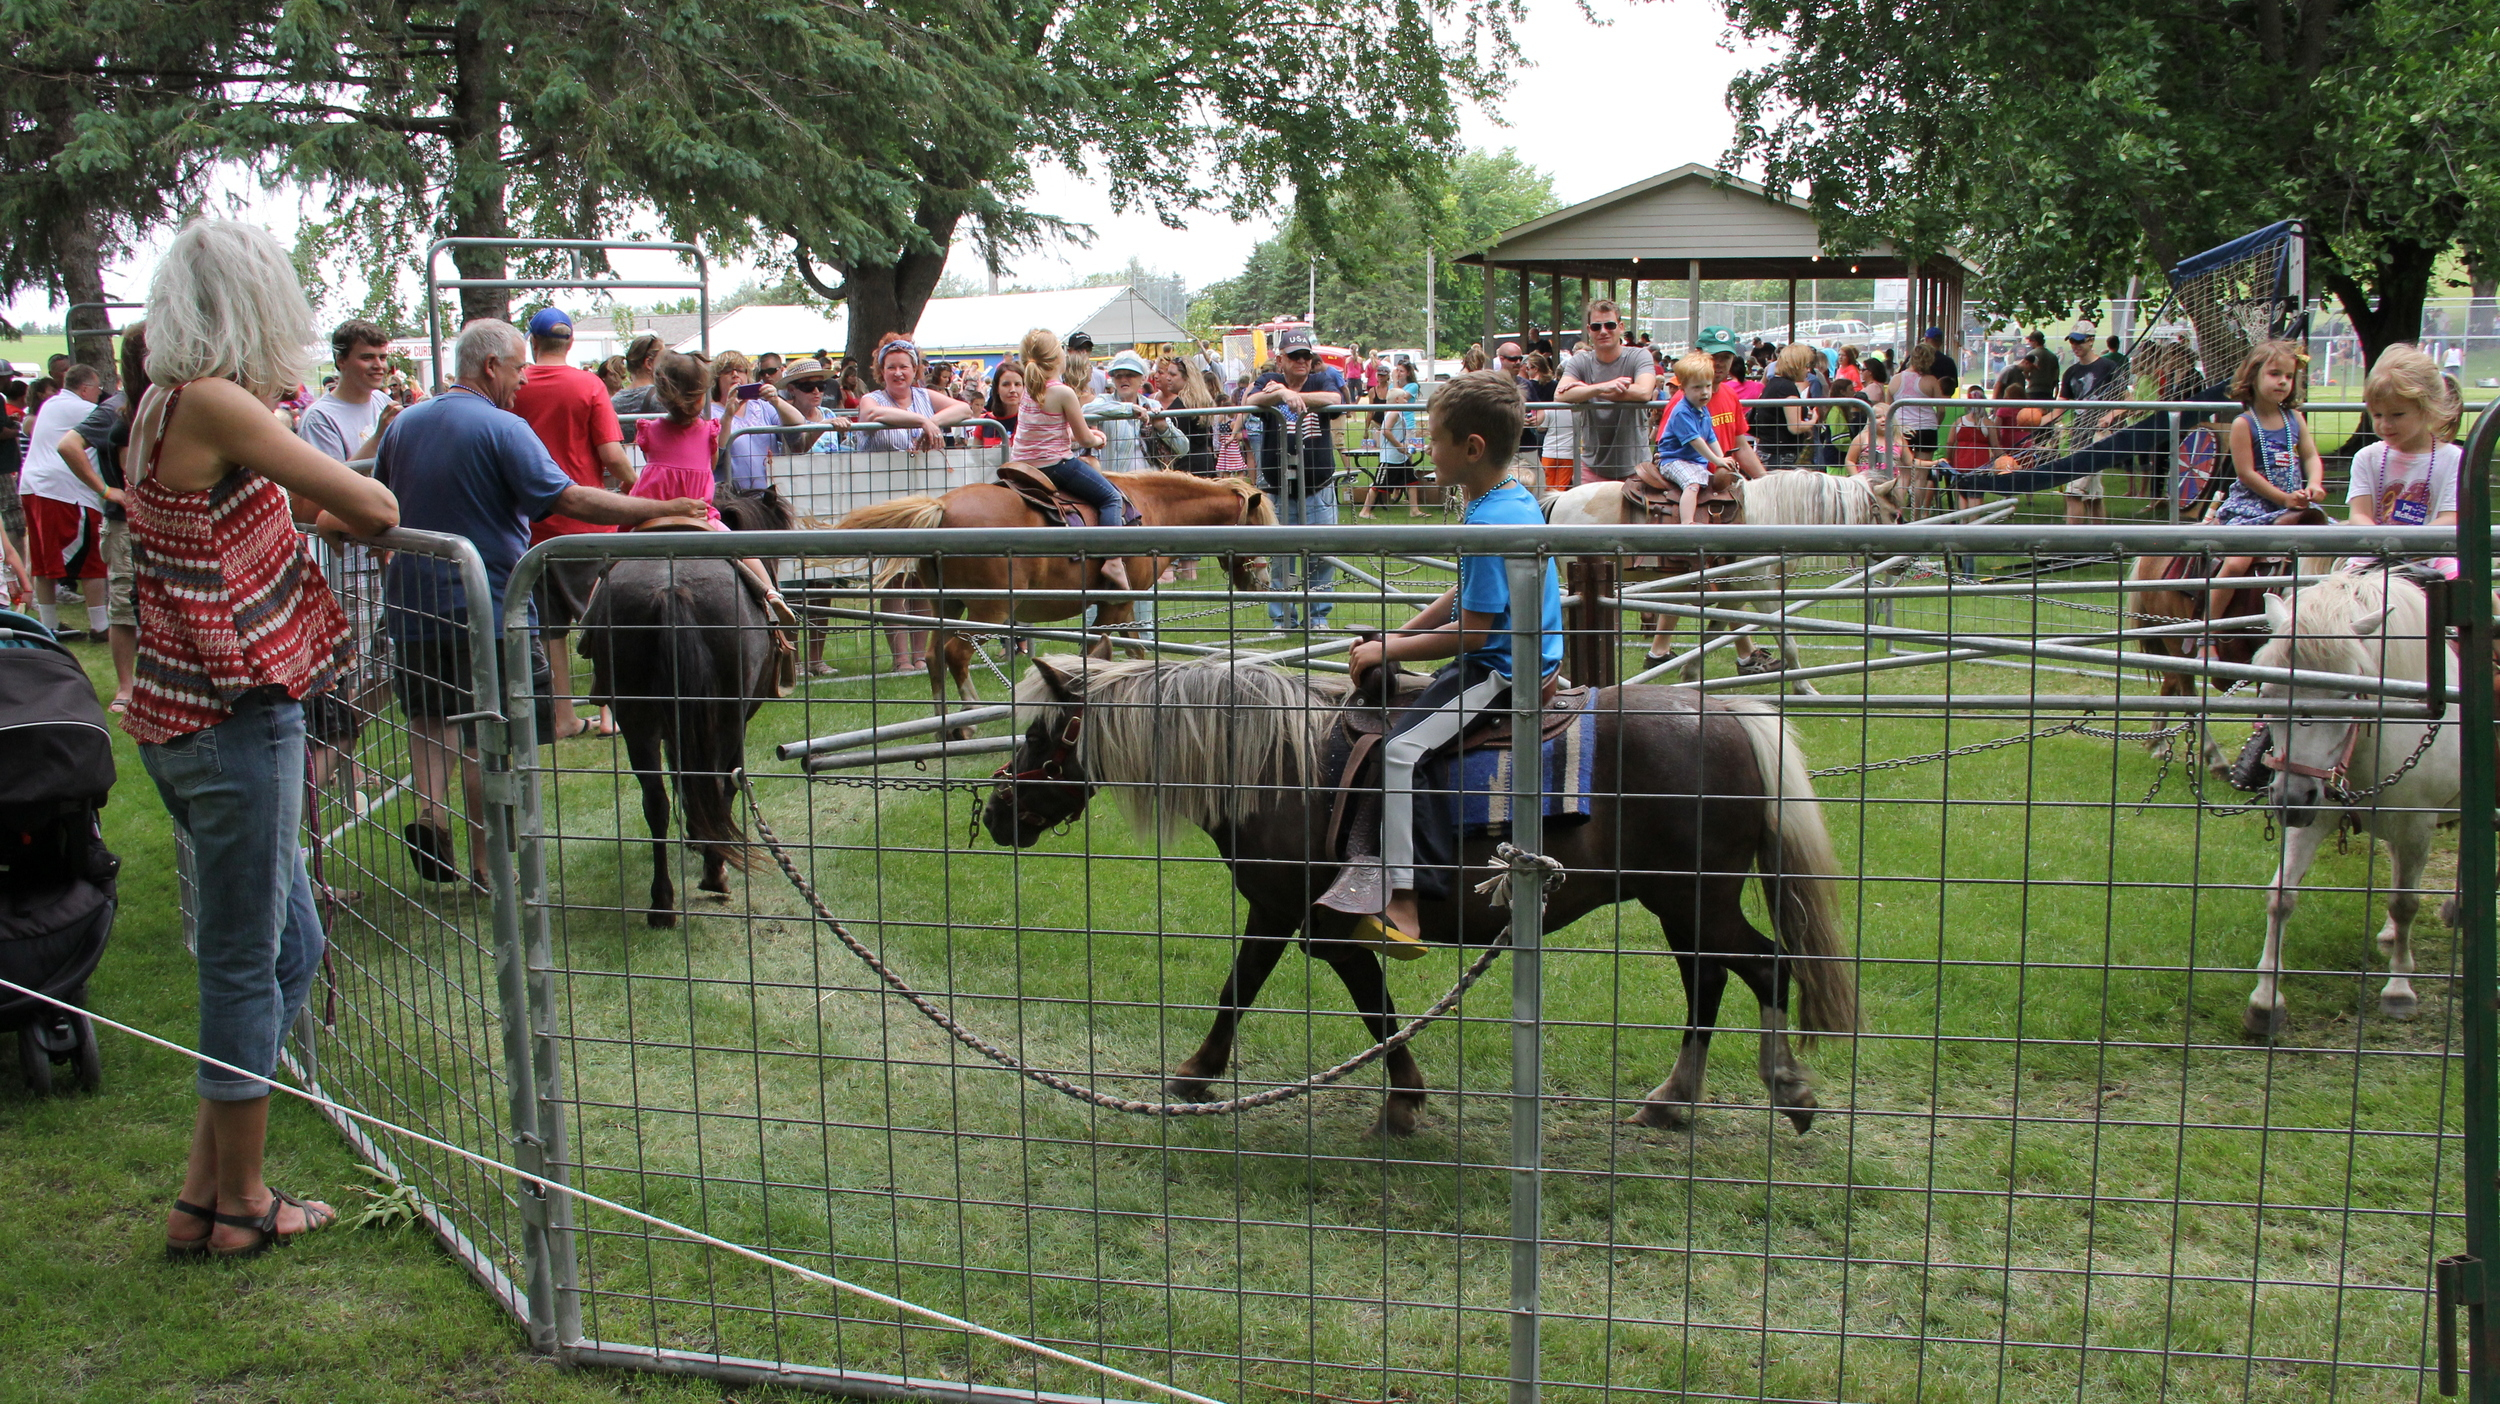 The pony rides are popular at public events like this Fourth of July Celebration.